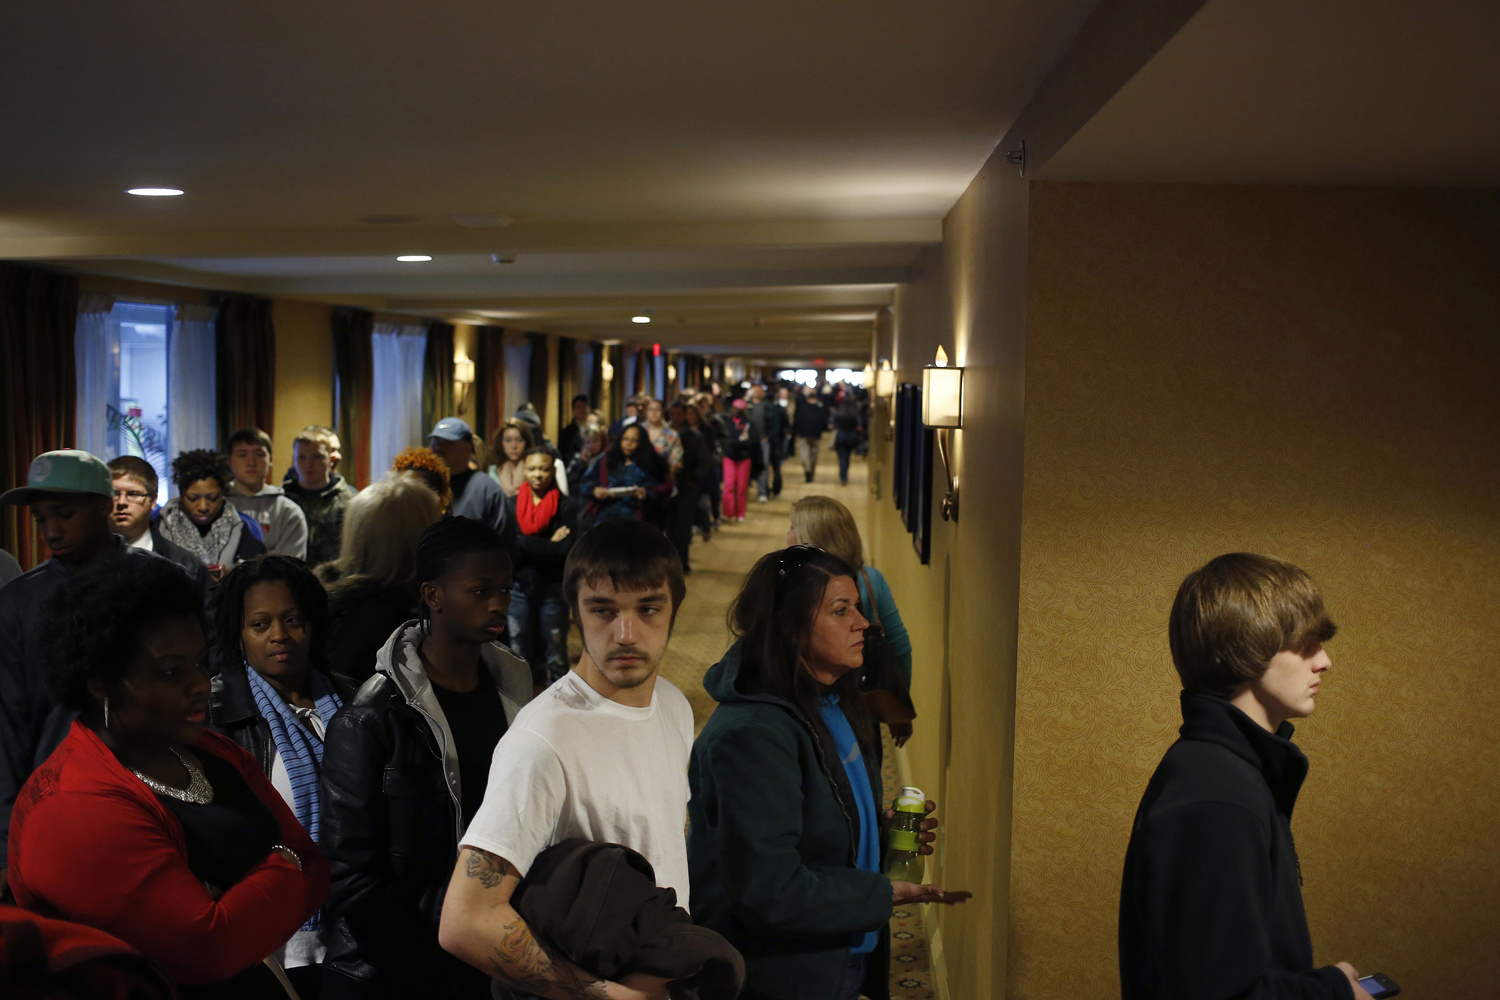 Prospective job applicants wait in line to learn about job openings at the Kentucky Kingdom Amusement Park during a job fair at the nearby Crowne Plaza Hotel in Louisville, Ky., Jan. 4, 2013.